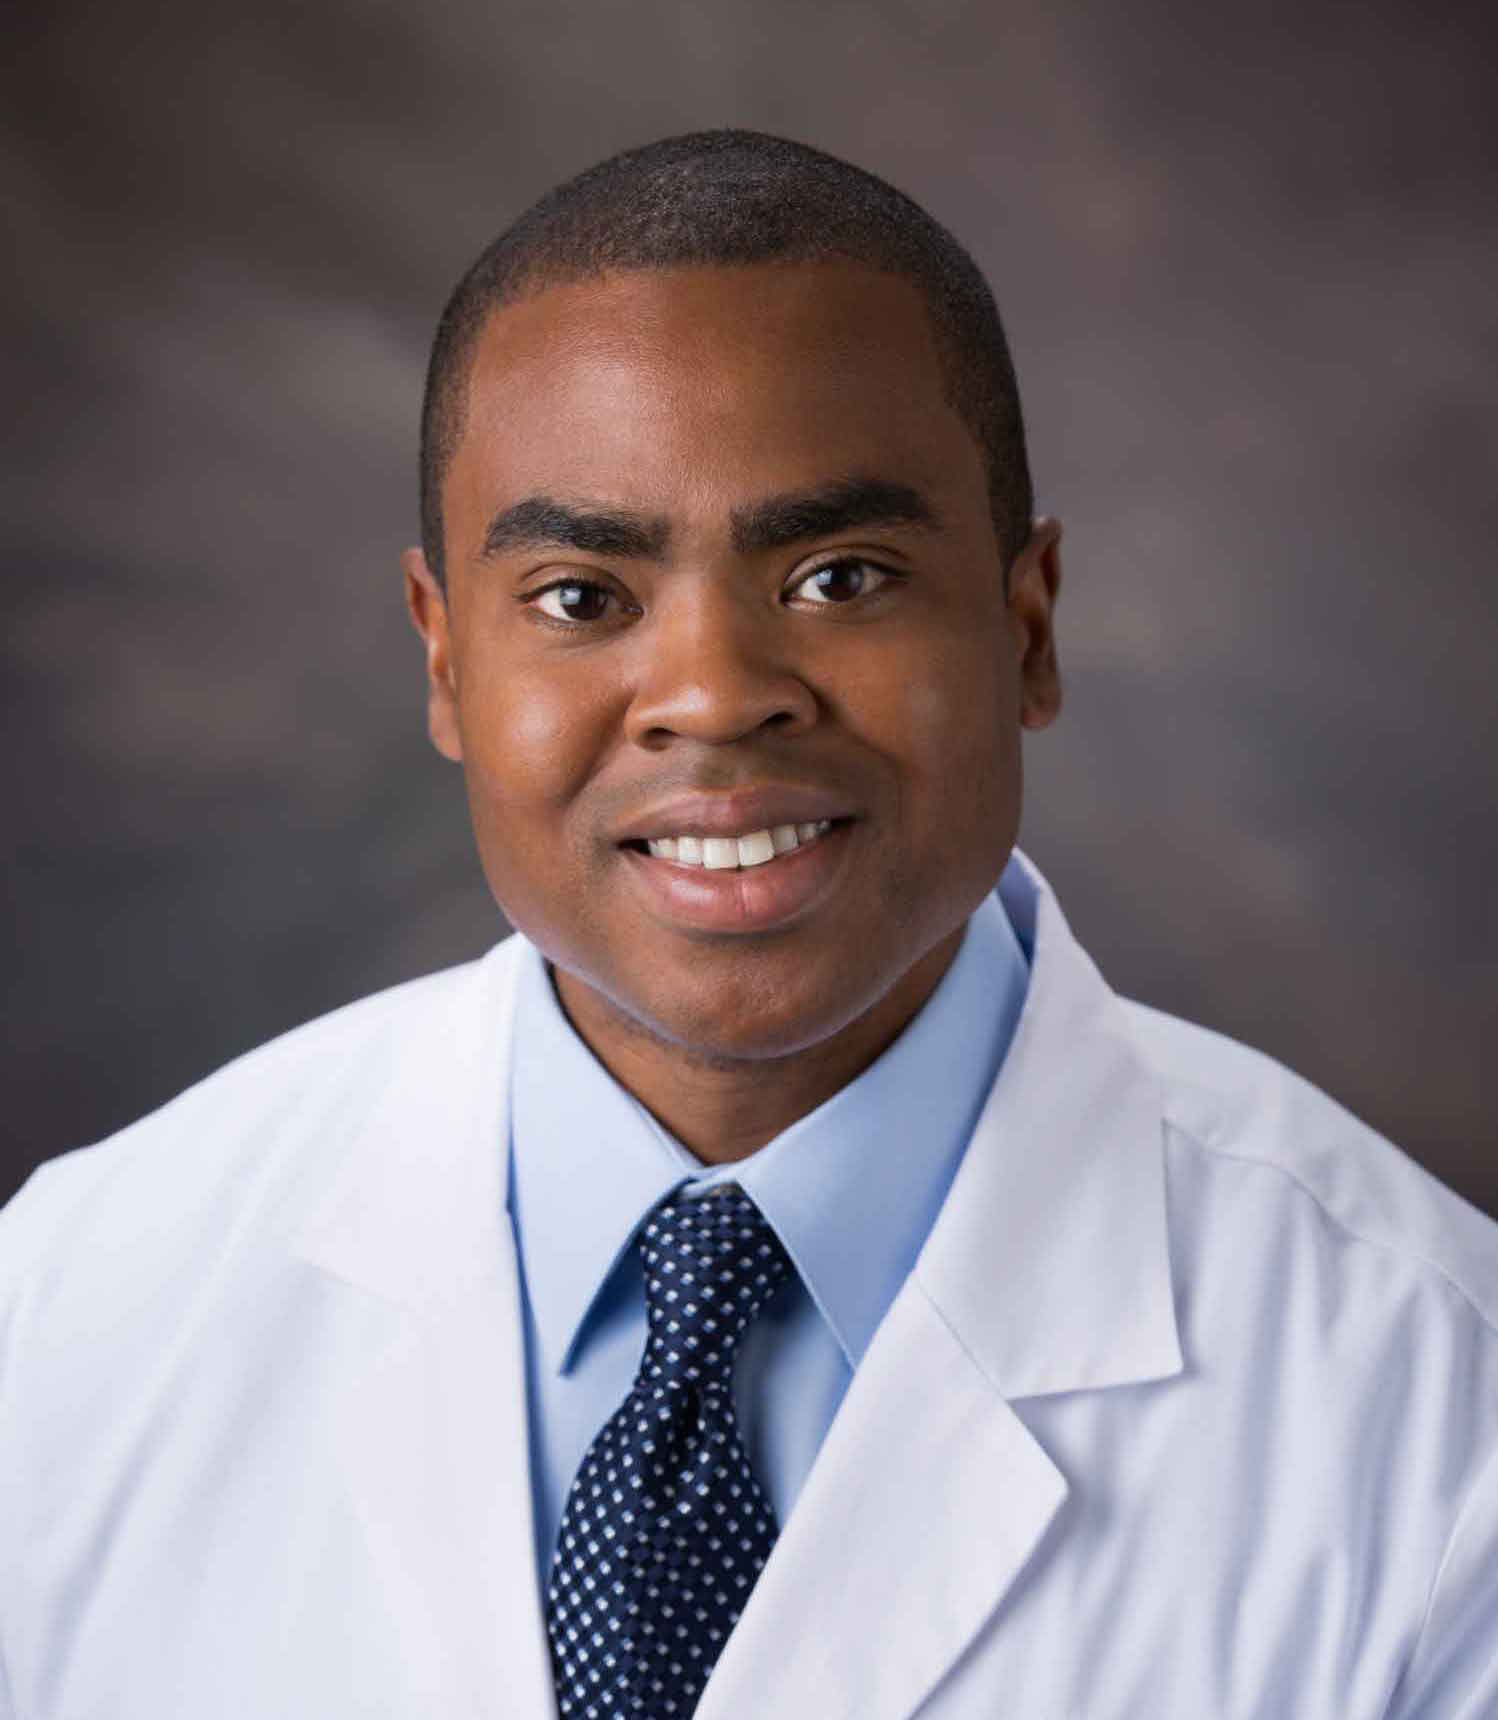 Johnny Washington, Jr., MD